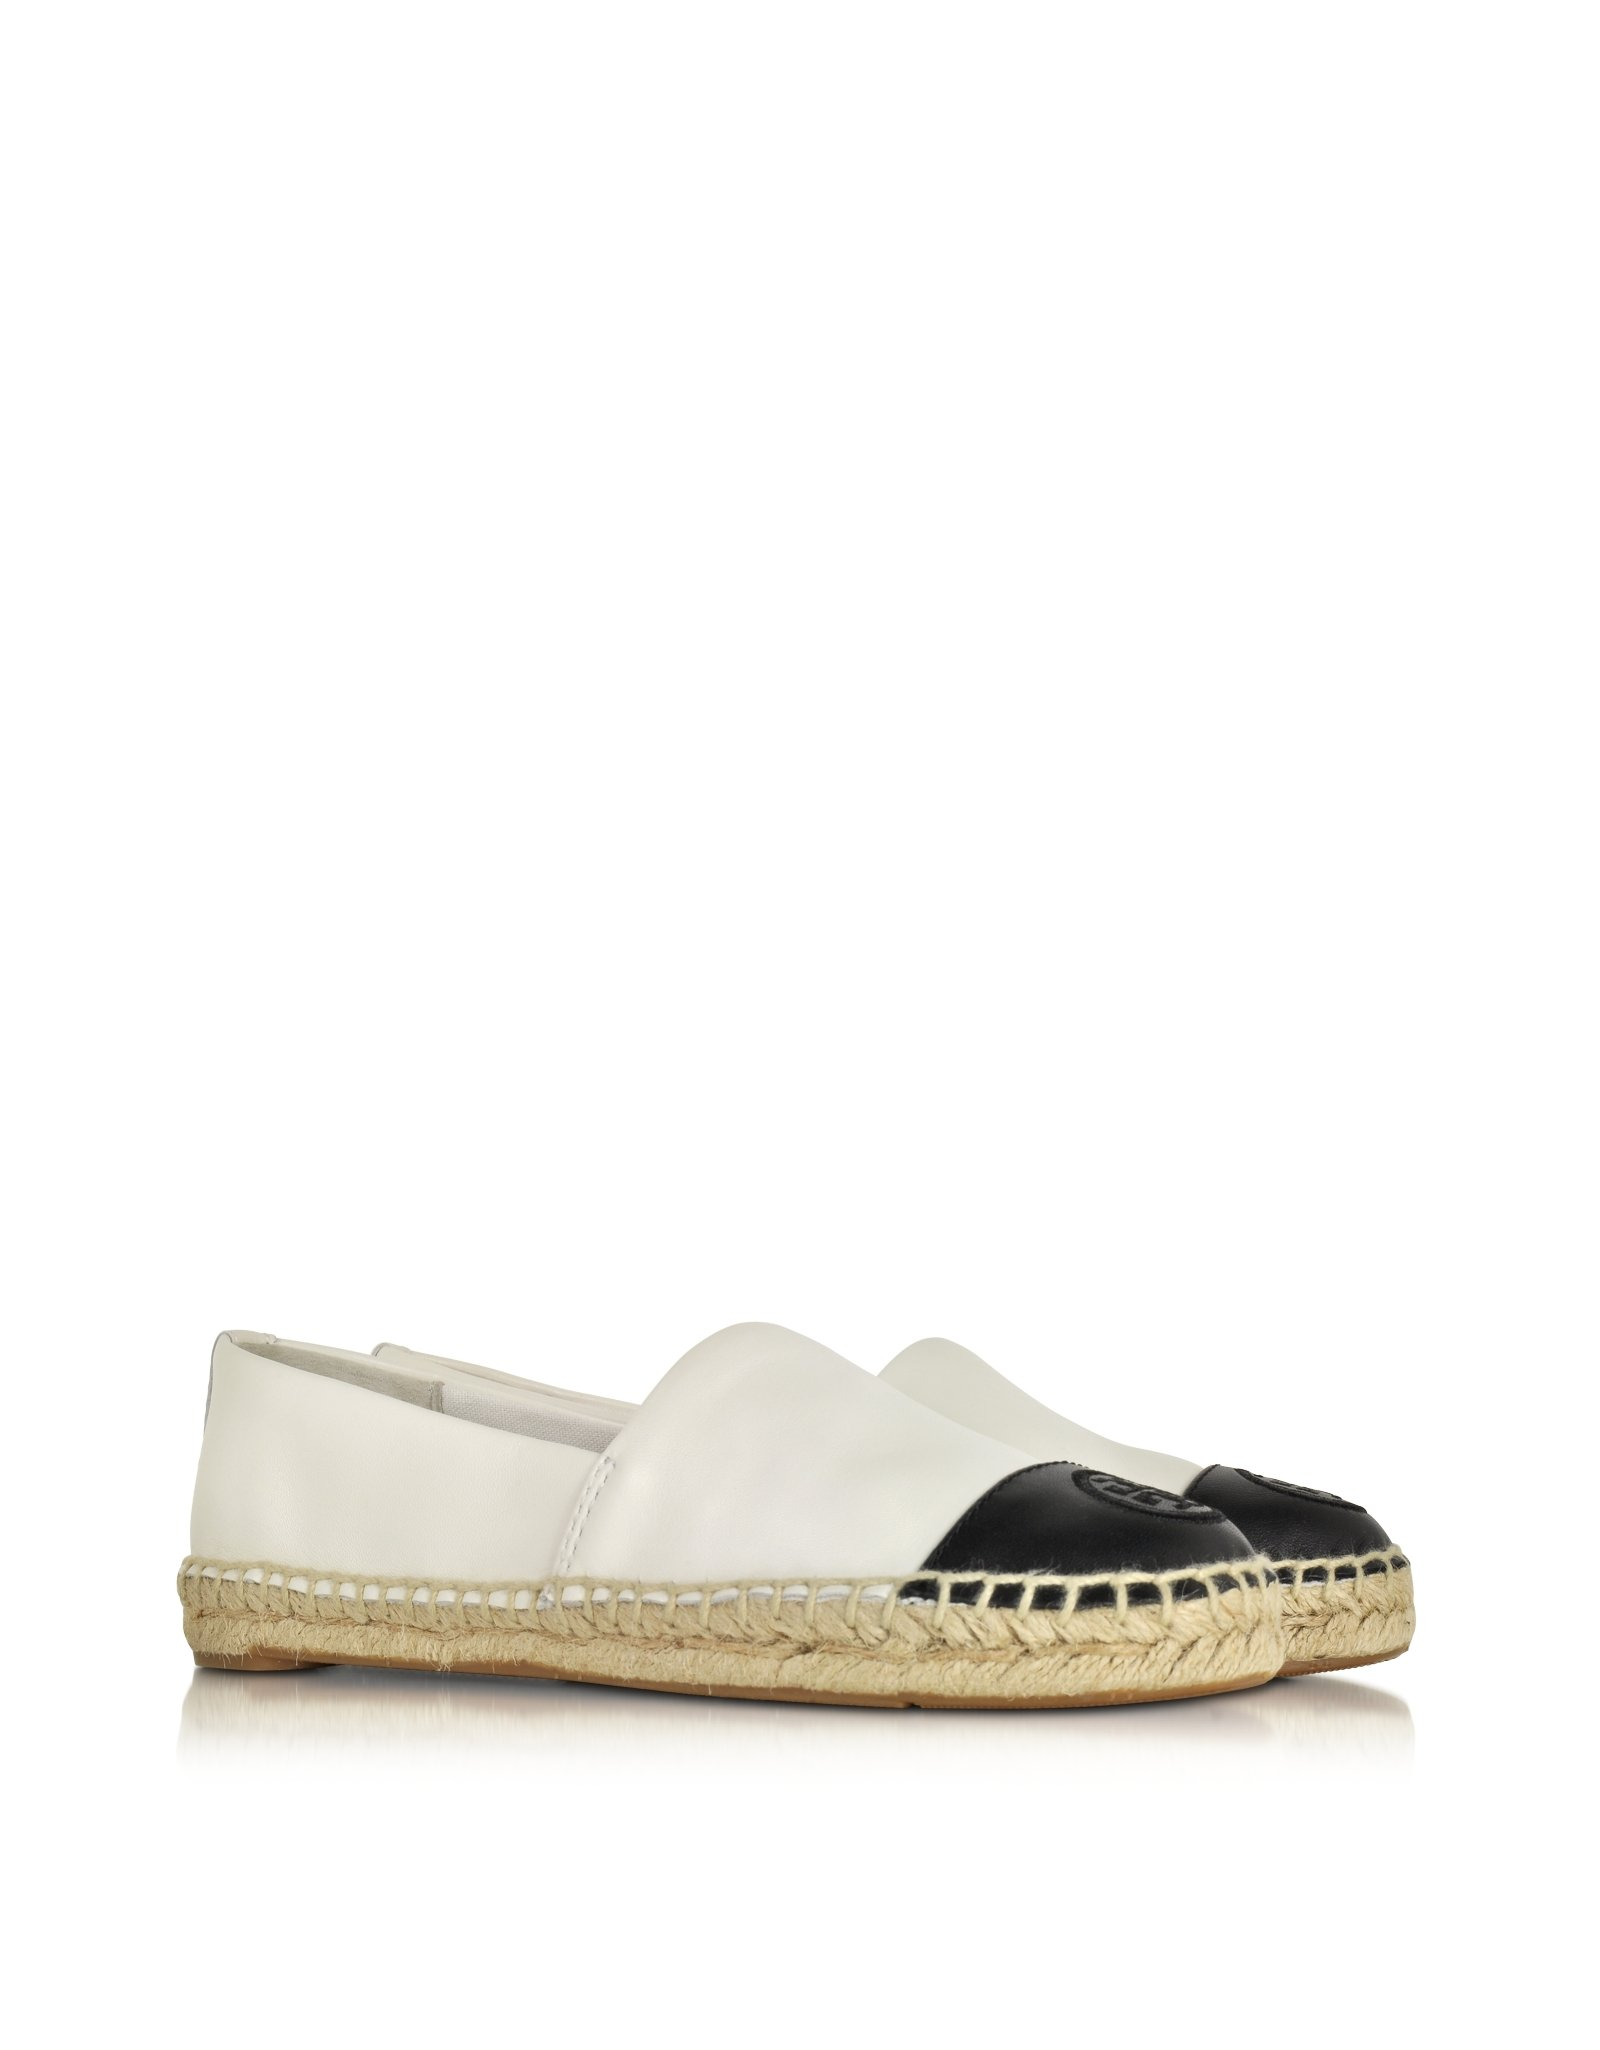 b0a700a96348 Lyst - Tory Burch Color Block Leather Flat Espadrille in White